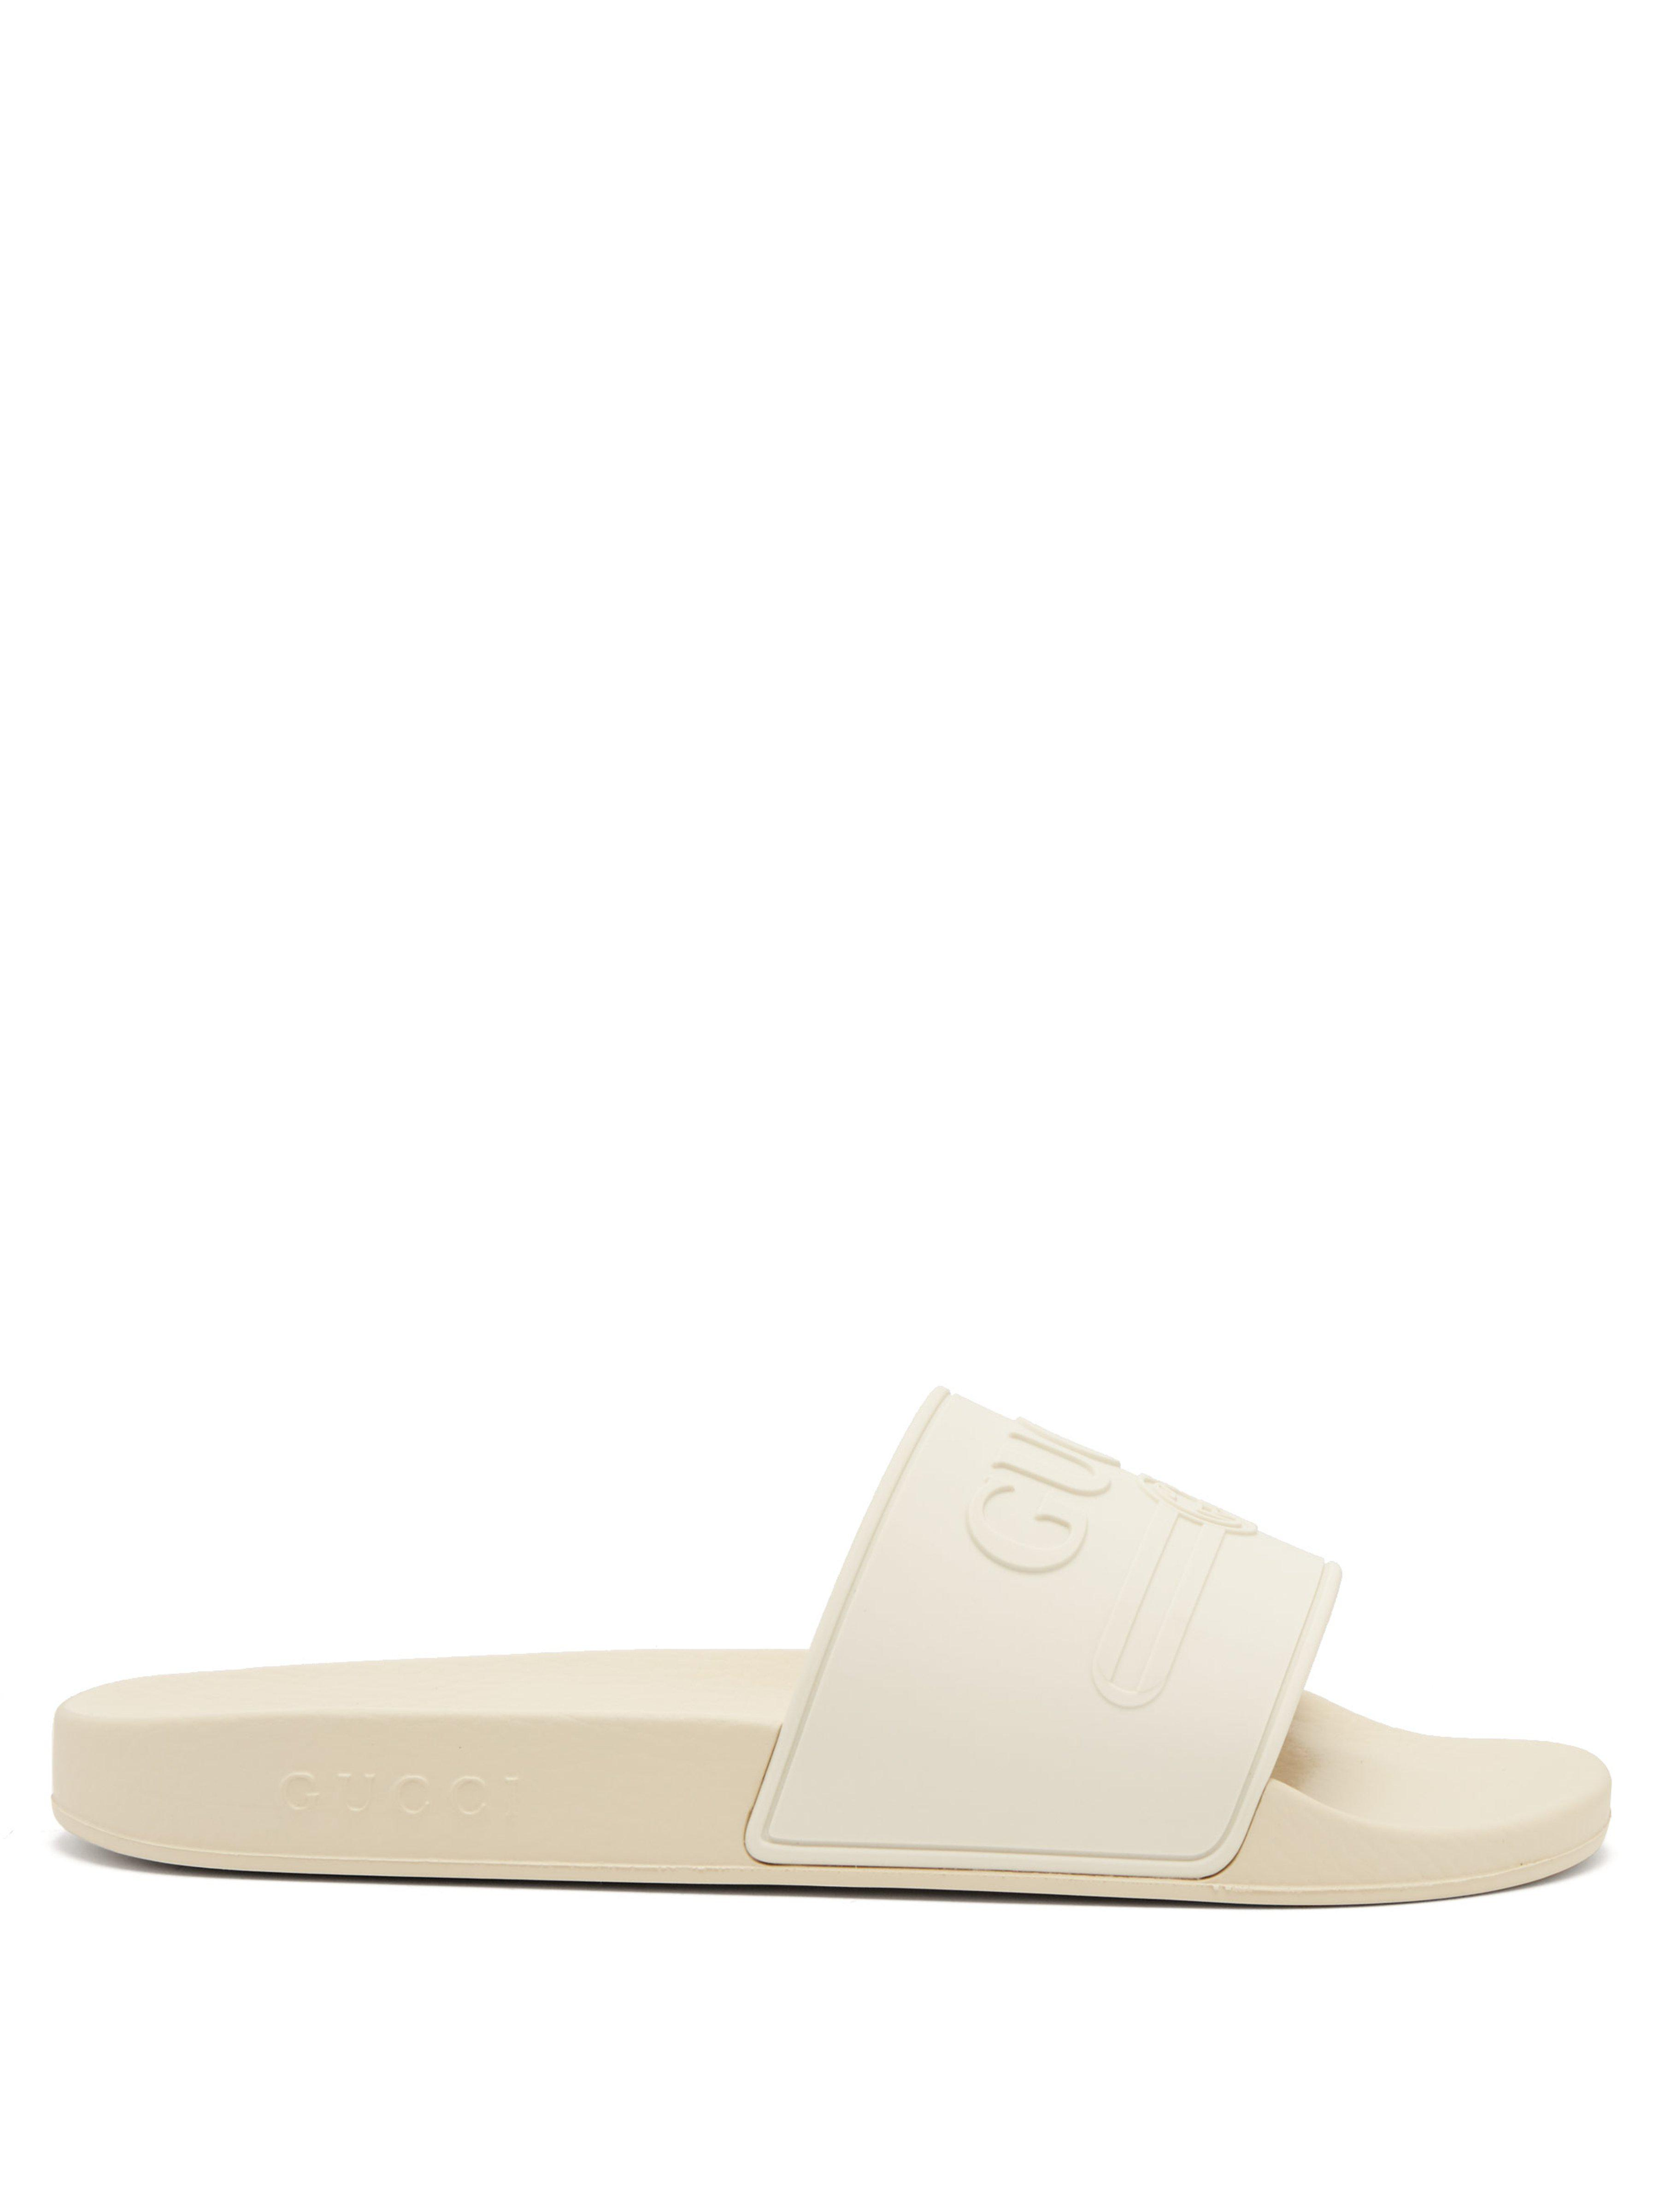 3ccd7dc53ad5 Gucci Logo Embossed Rubber Slides in White for Men - Lyst